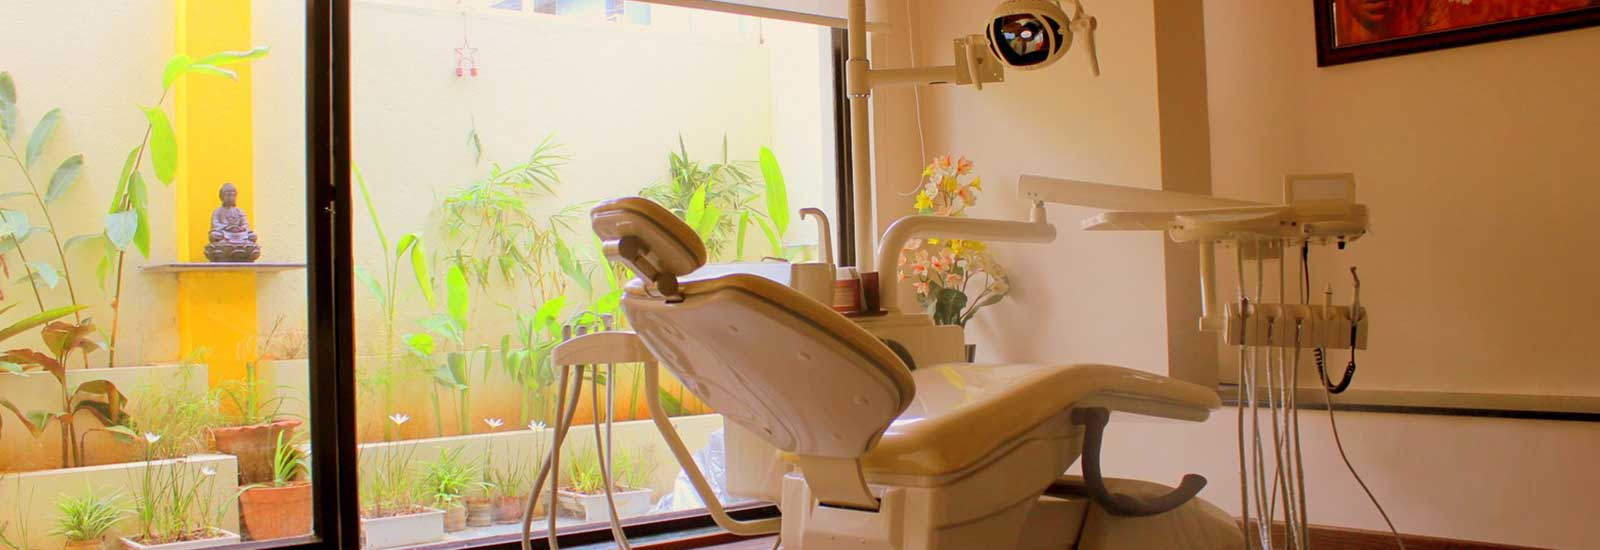 Dental Care Bangalore